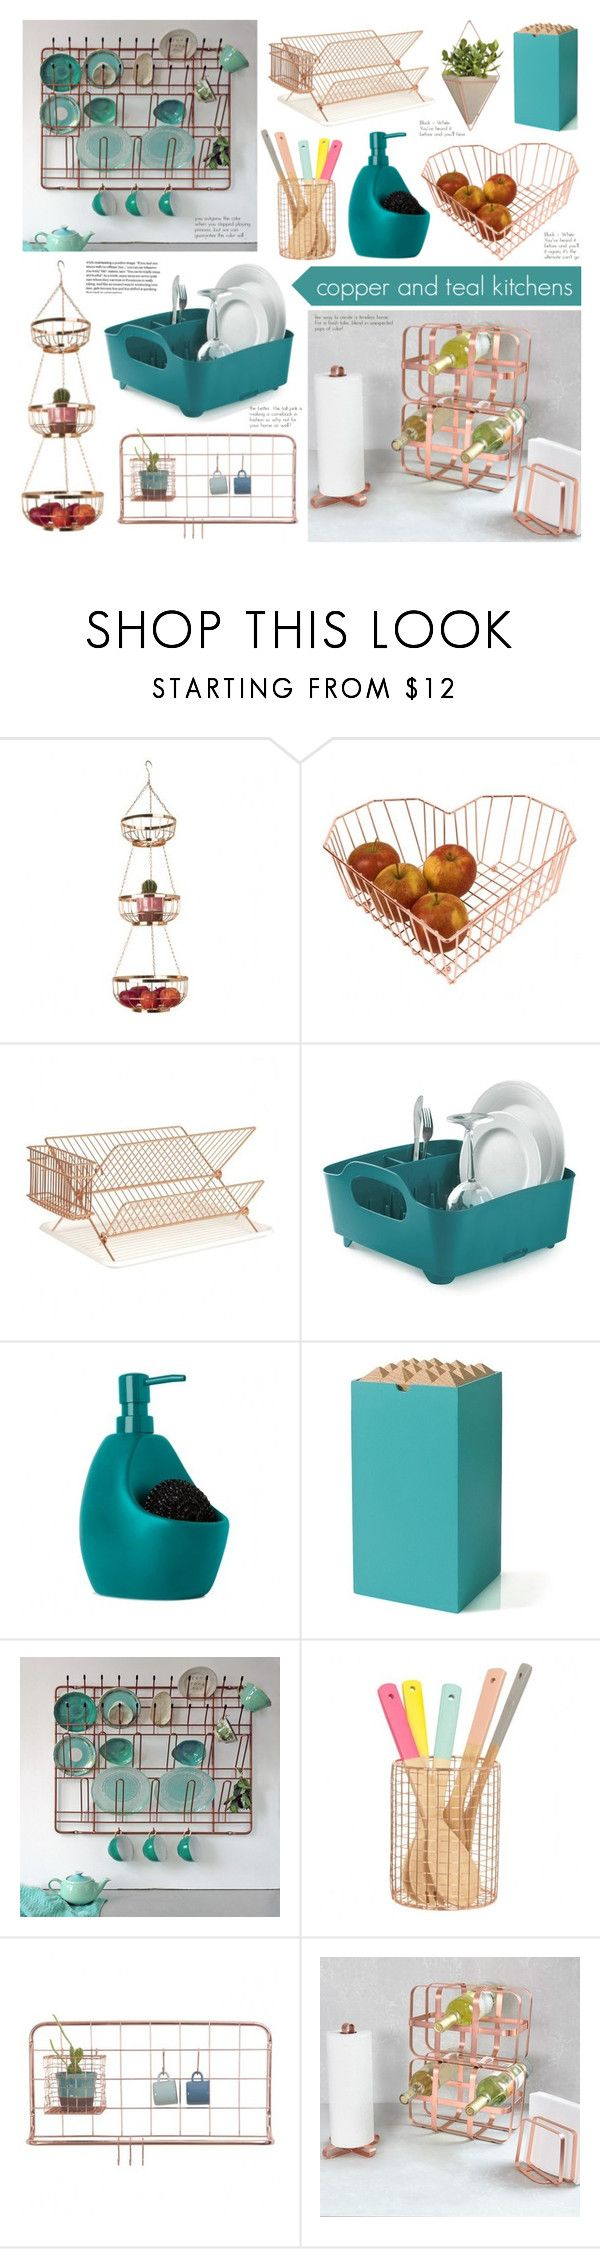 """Copper and Teal Kitchens"" by redcandyuk ❤ liked on Polyvore featuring interior, interiors, interior design, home, home decor, interior decorating, Umbra, Korridor, kitchen and modern"